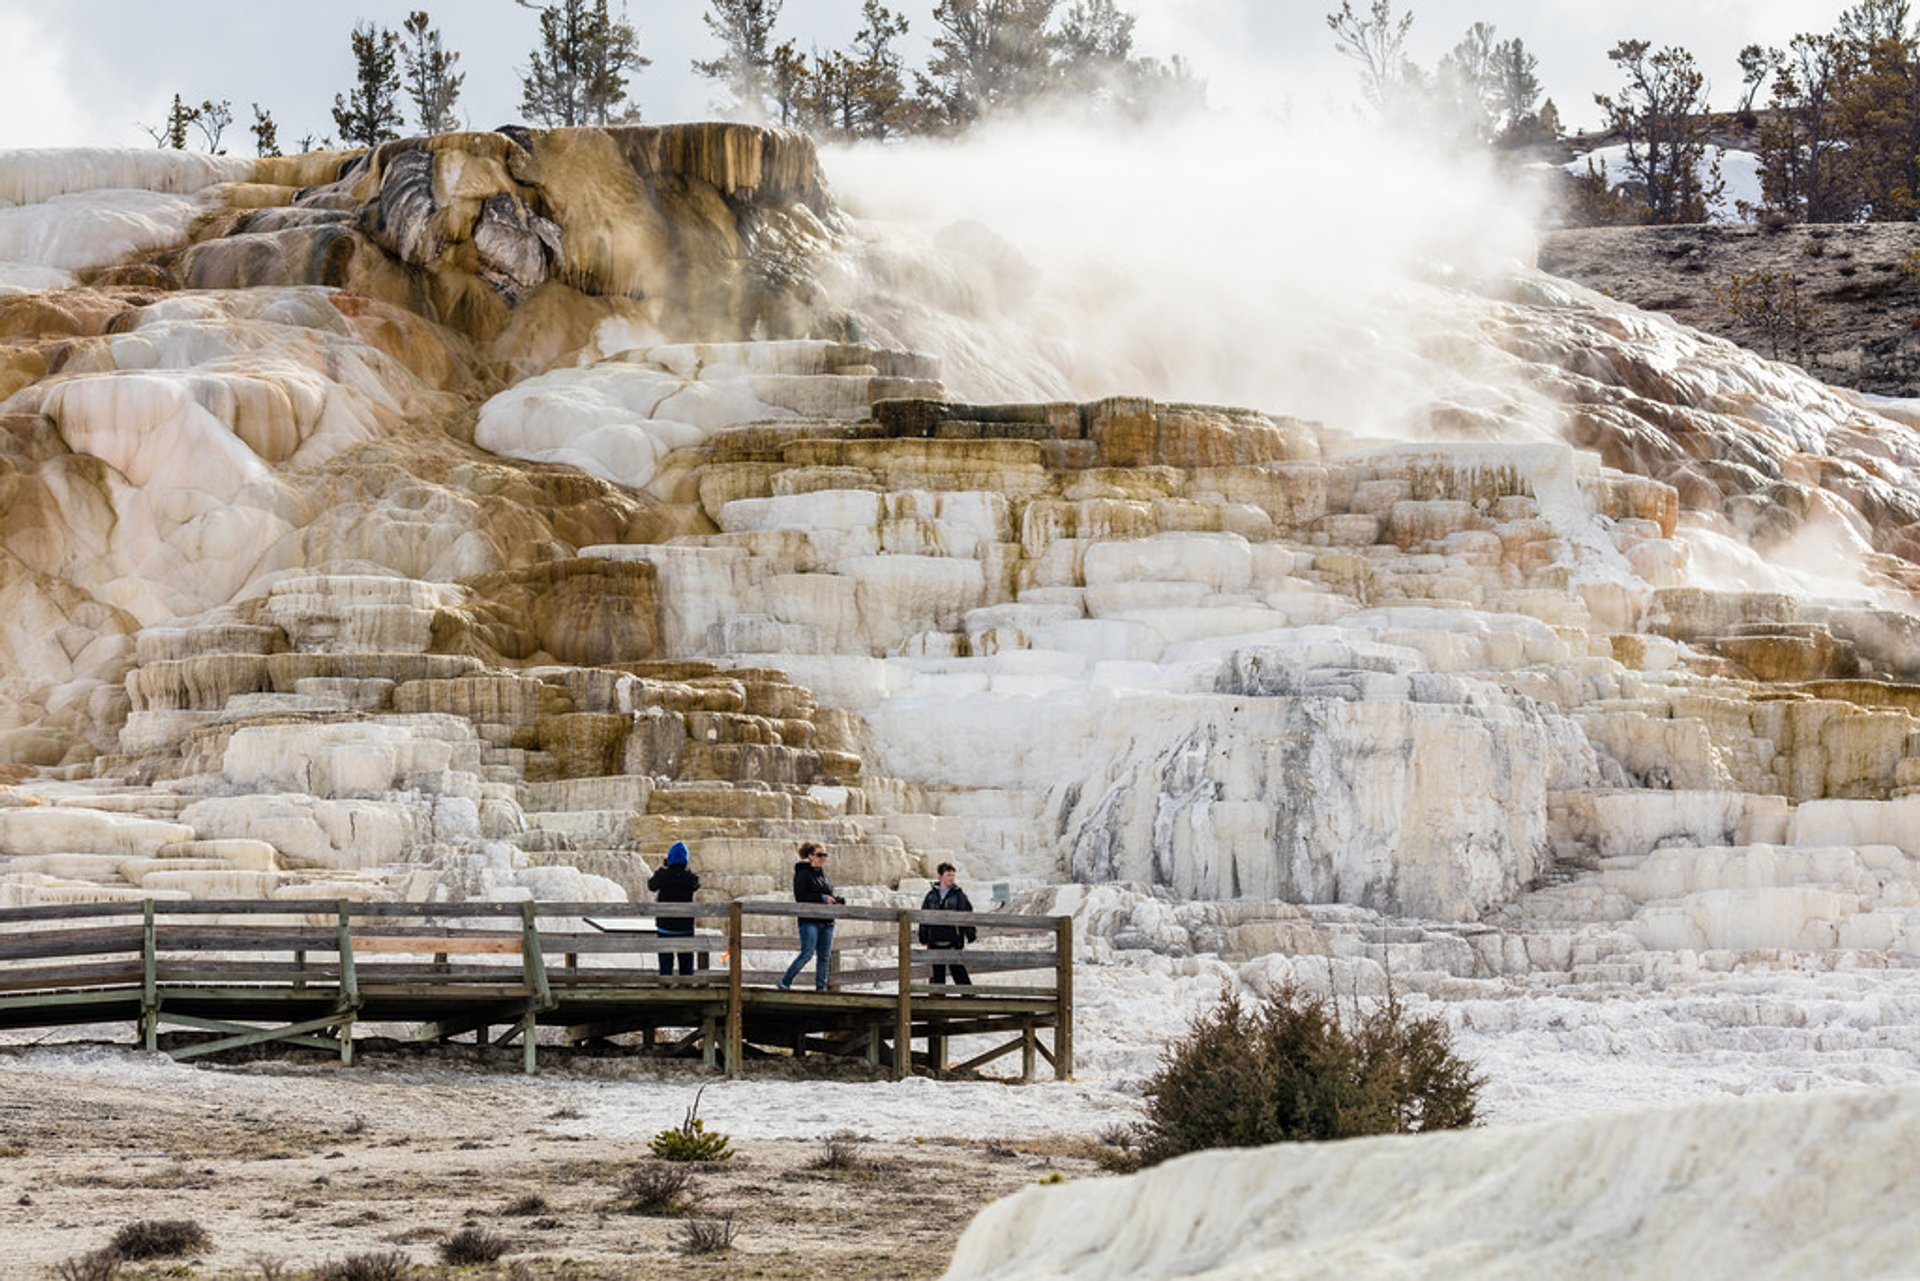 Mammoth Hot Springs in Yellowstone National Park 2020 - Best Time